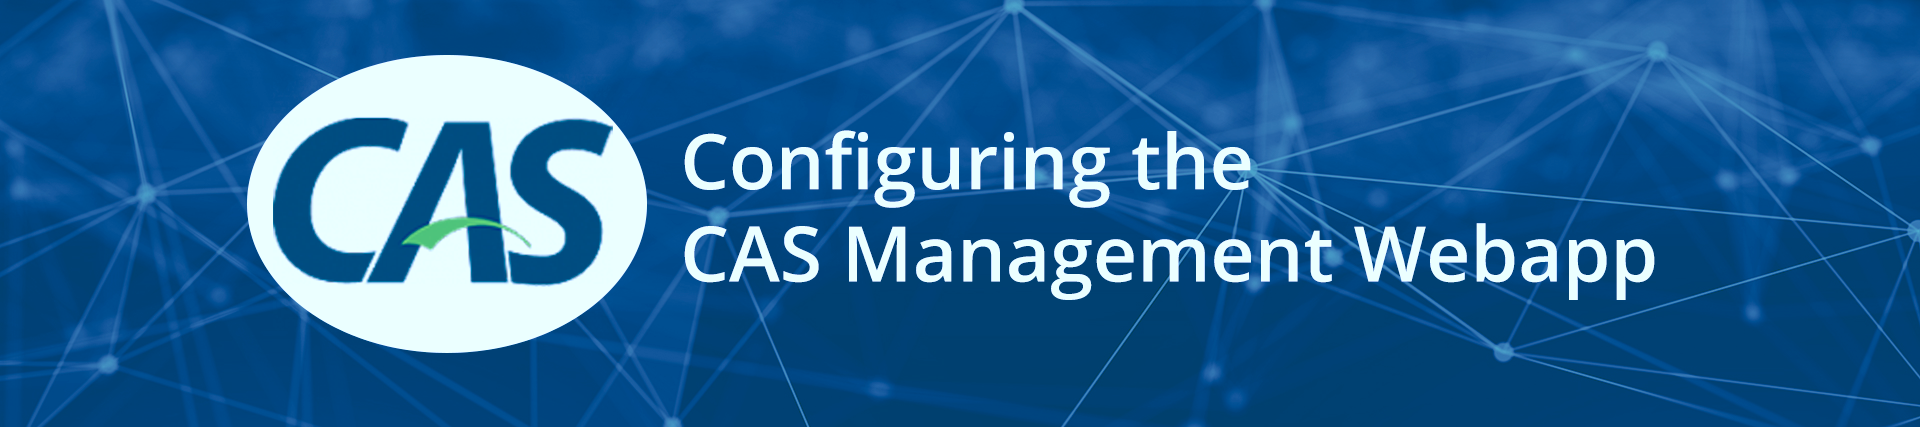 Configuring the CAS Management Webapp